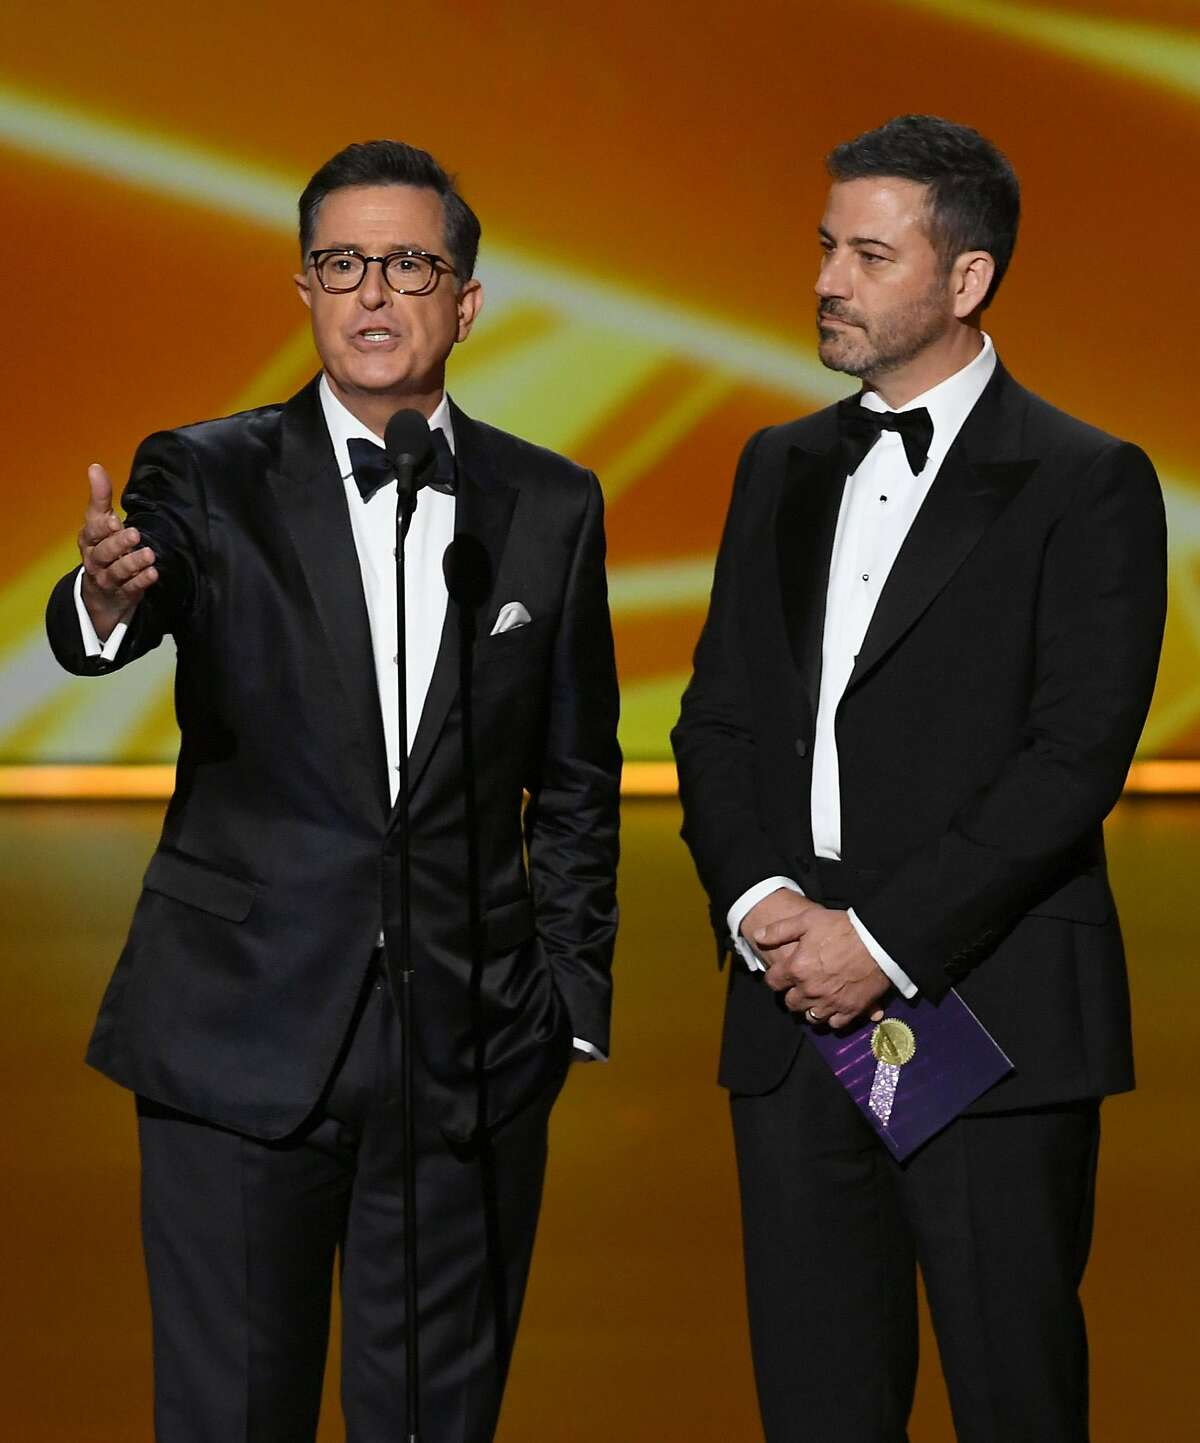 (L-R) Stephen Colbert and Jimmy Kimmel speak onstage during the 71st Emmy Awards at Microsoft Theater on September 22, 2019 in Los Angeles, California.